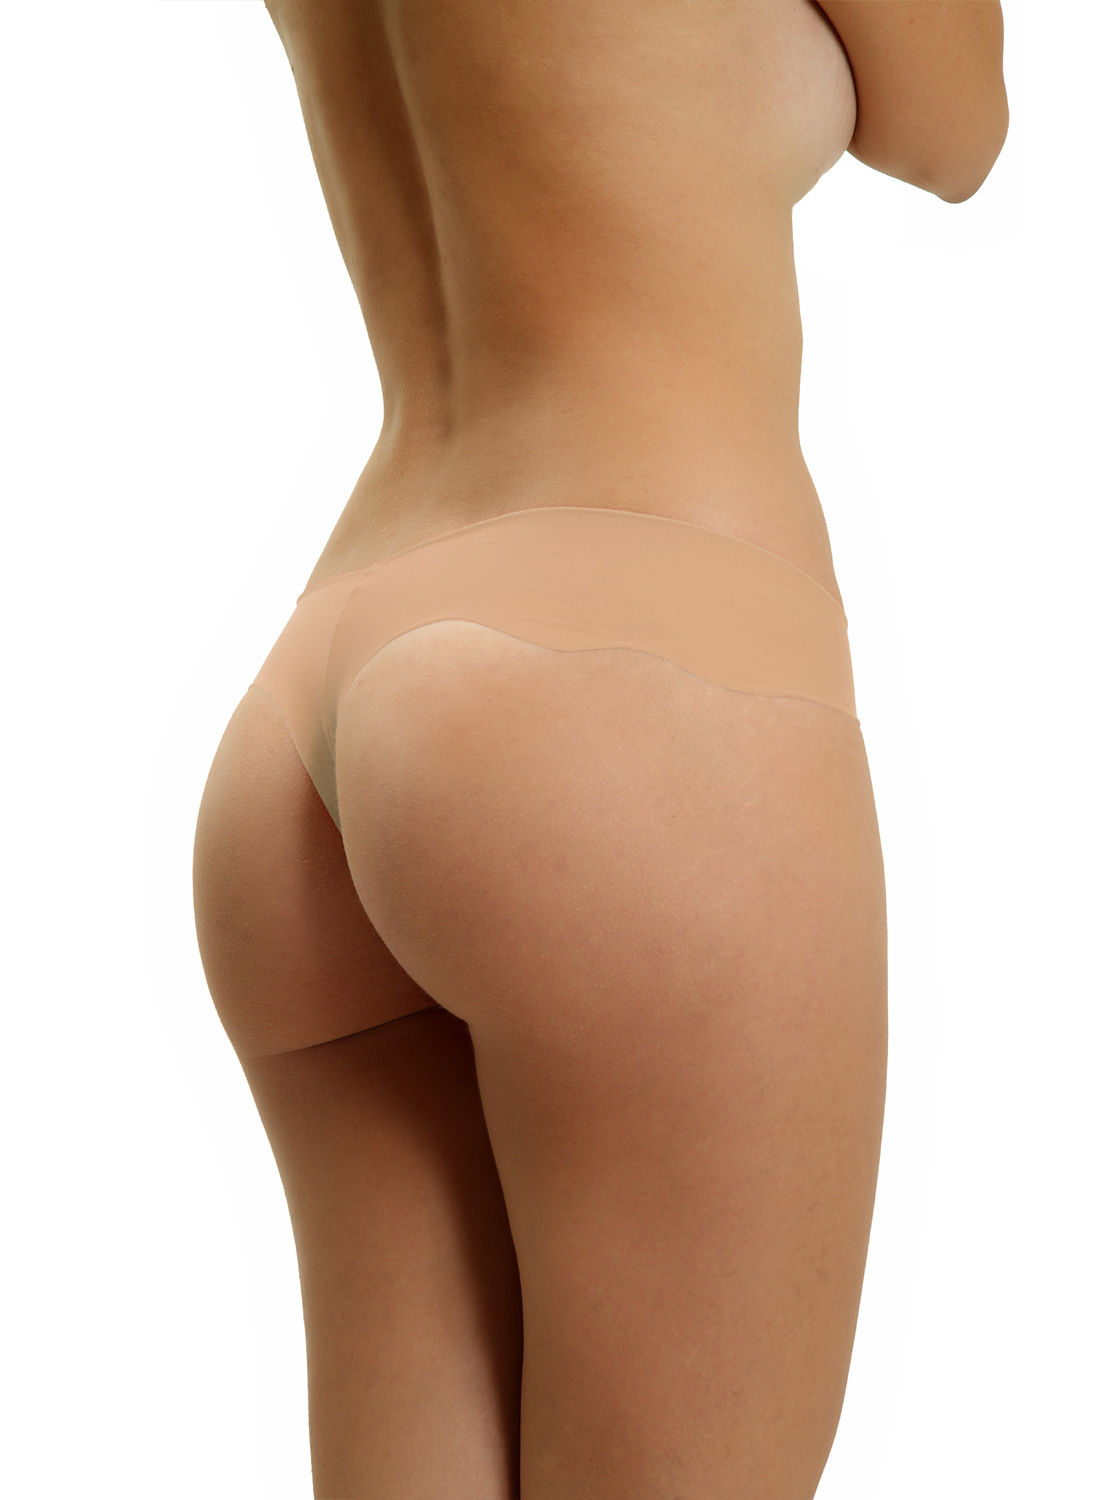 drama queen thong 5004 nude